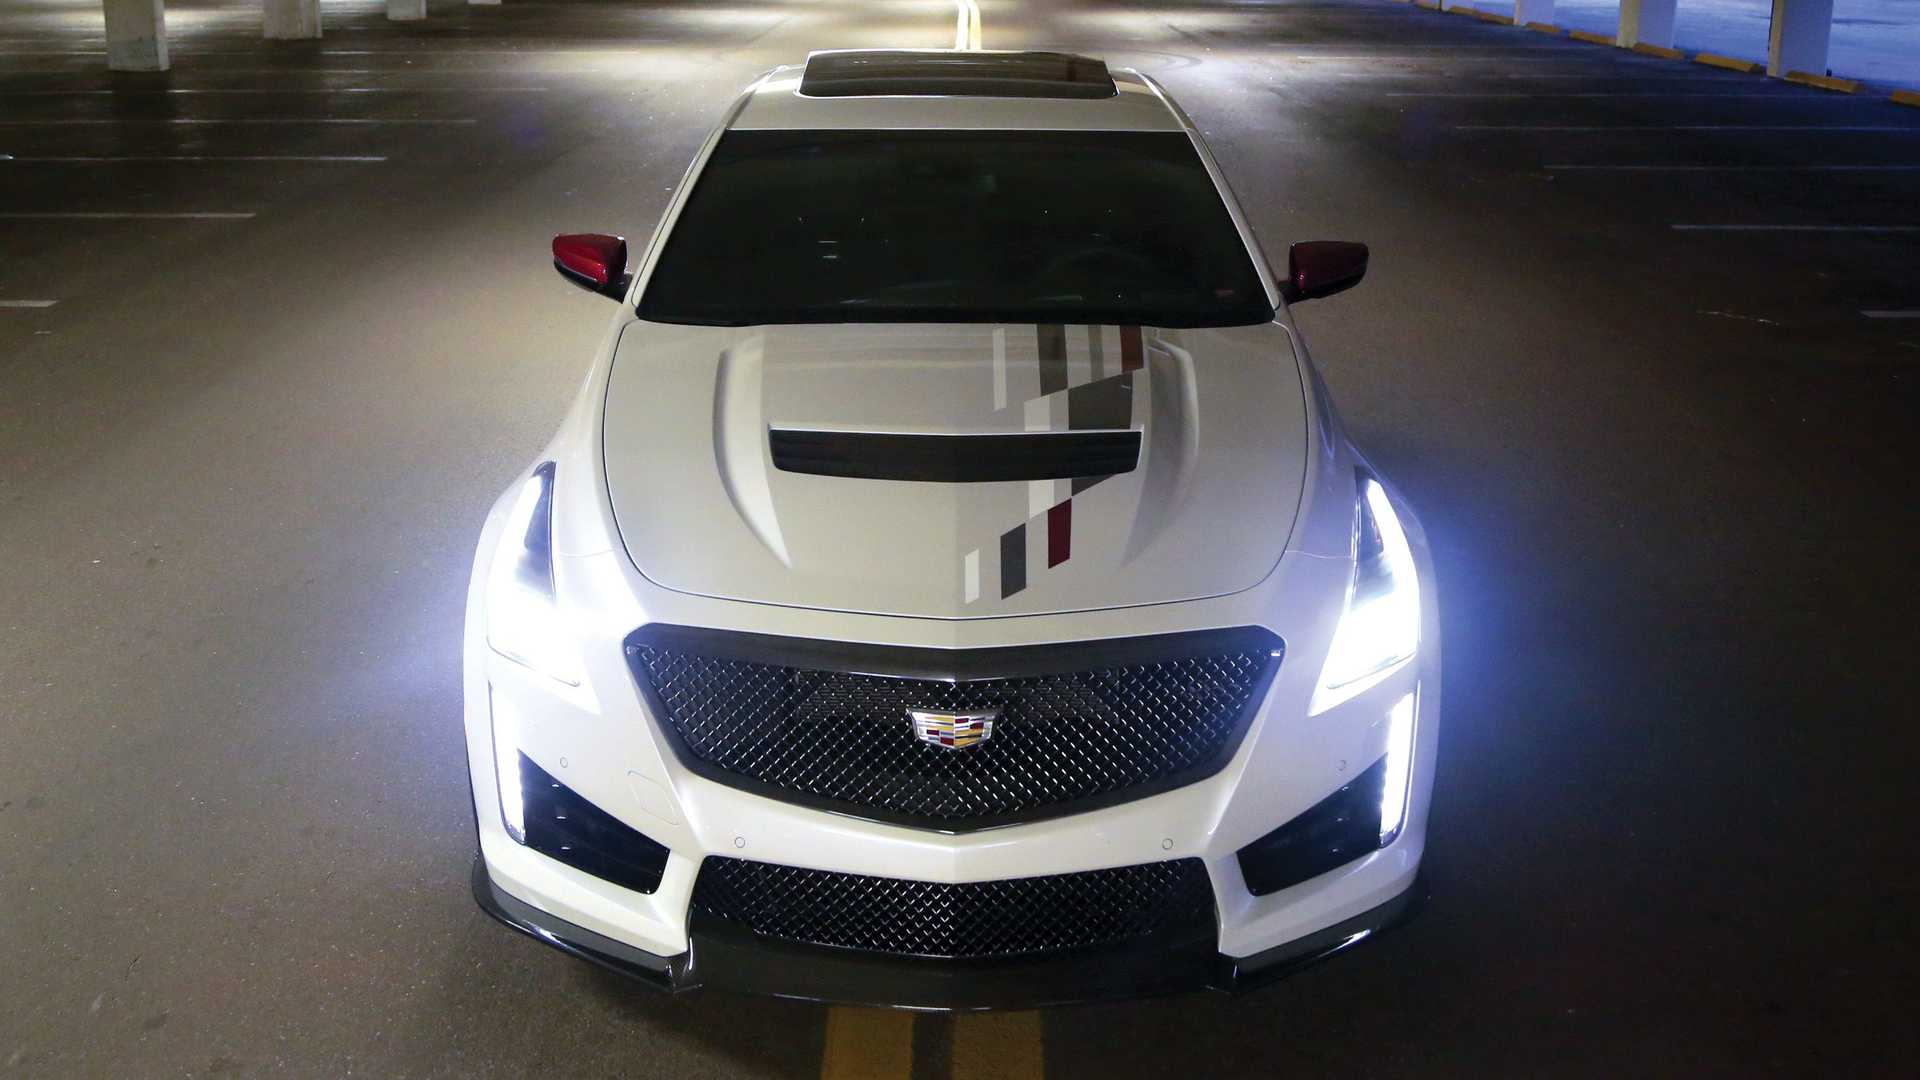 Enter Now To Win This Ultra-Rare 200-MPH Cadillac CTS-V Championship Edition